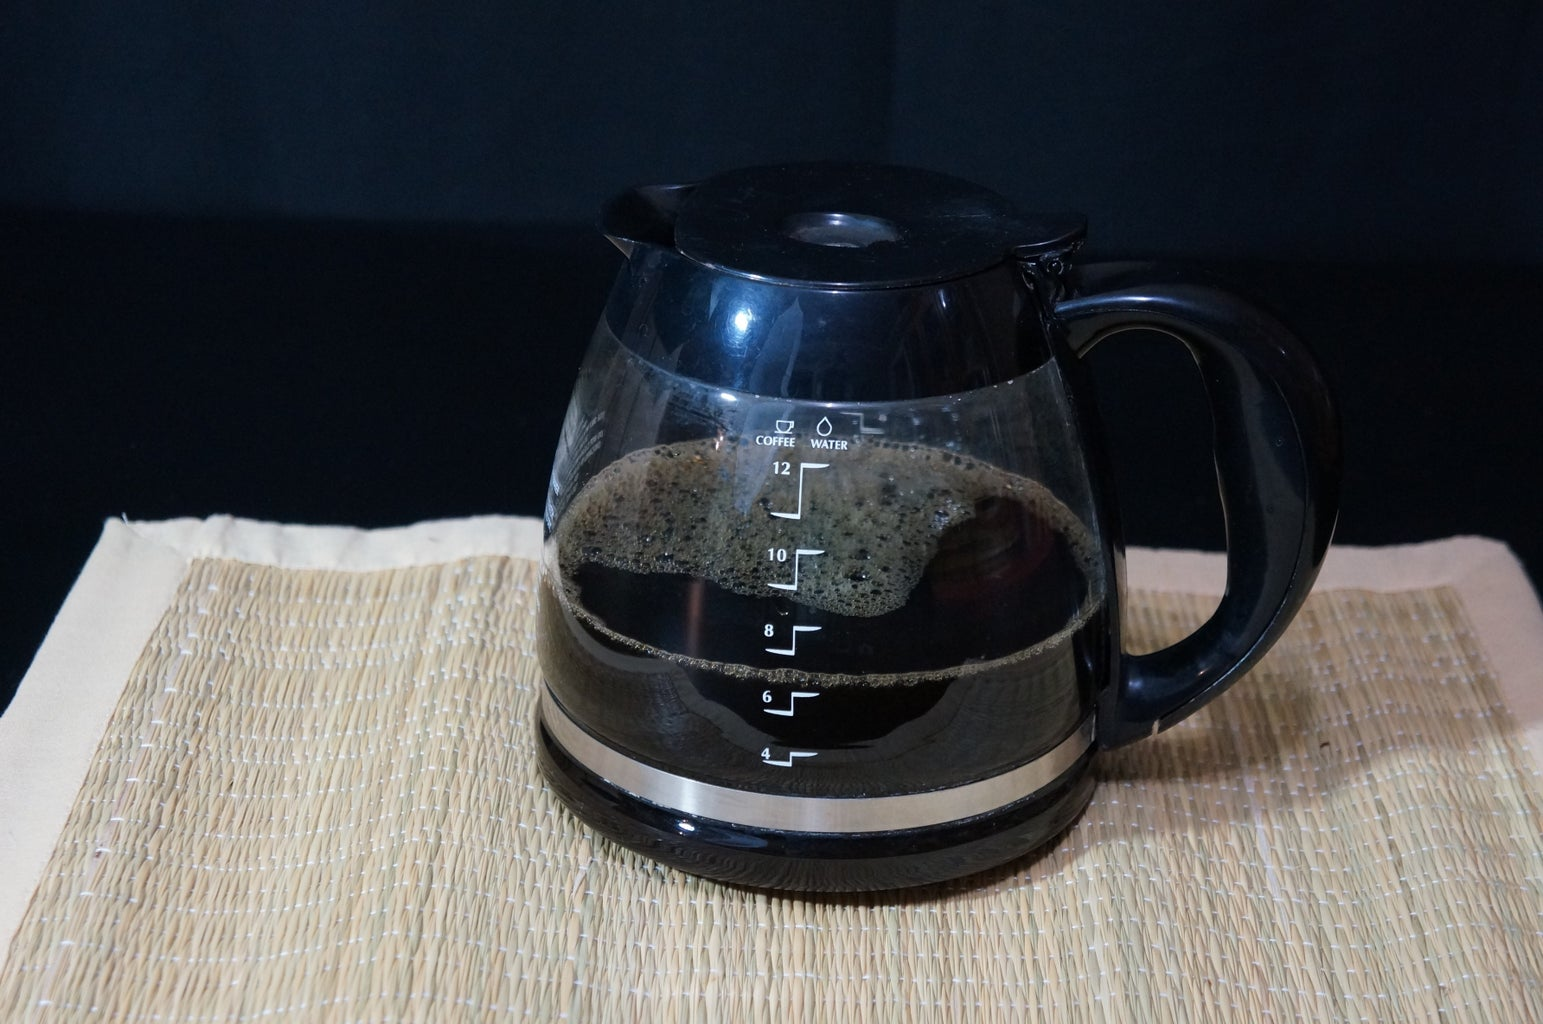 Add Recipe Ingredients to Coffee